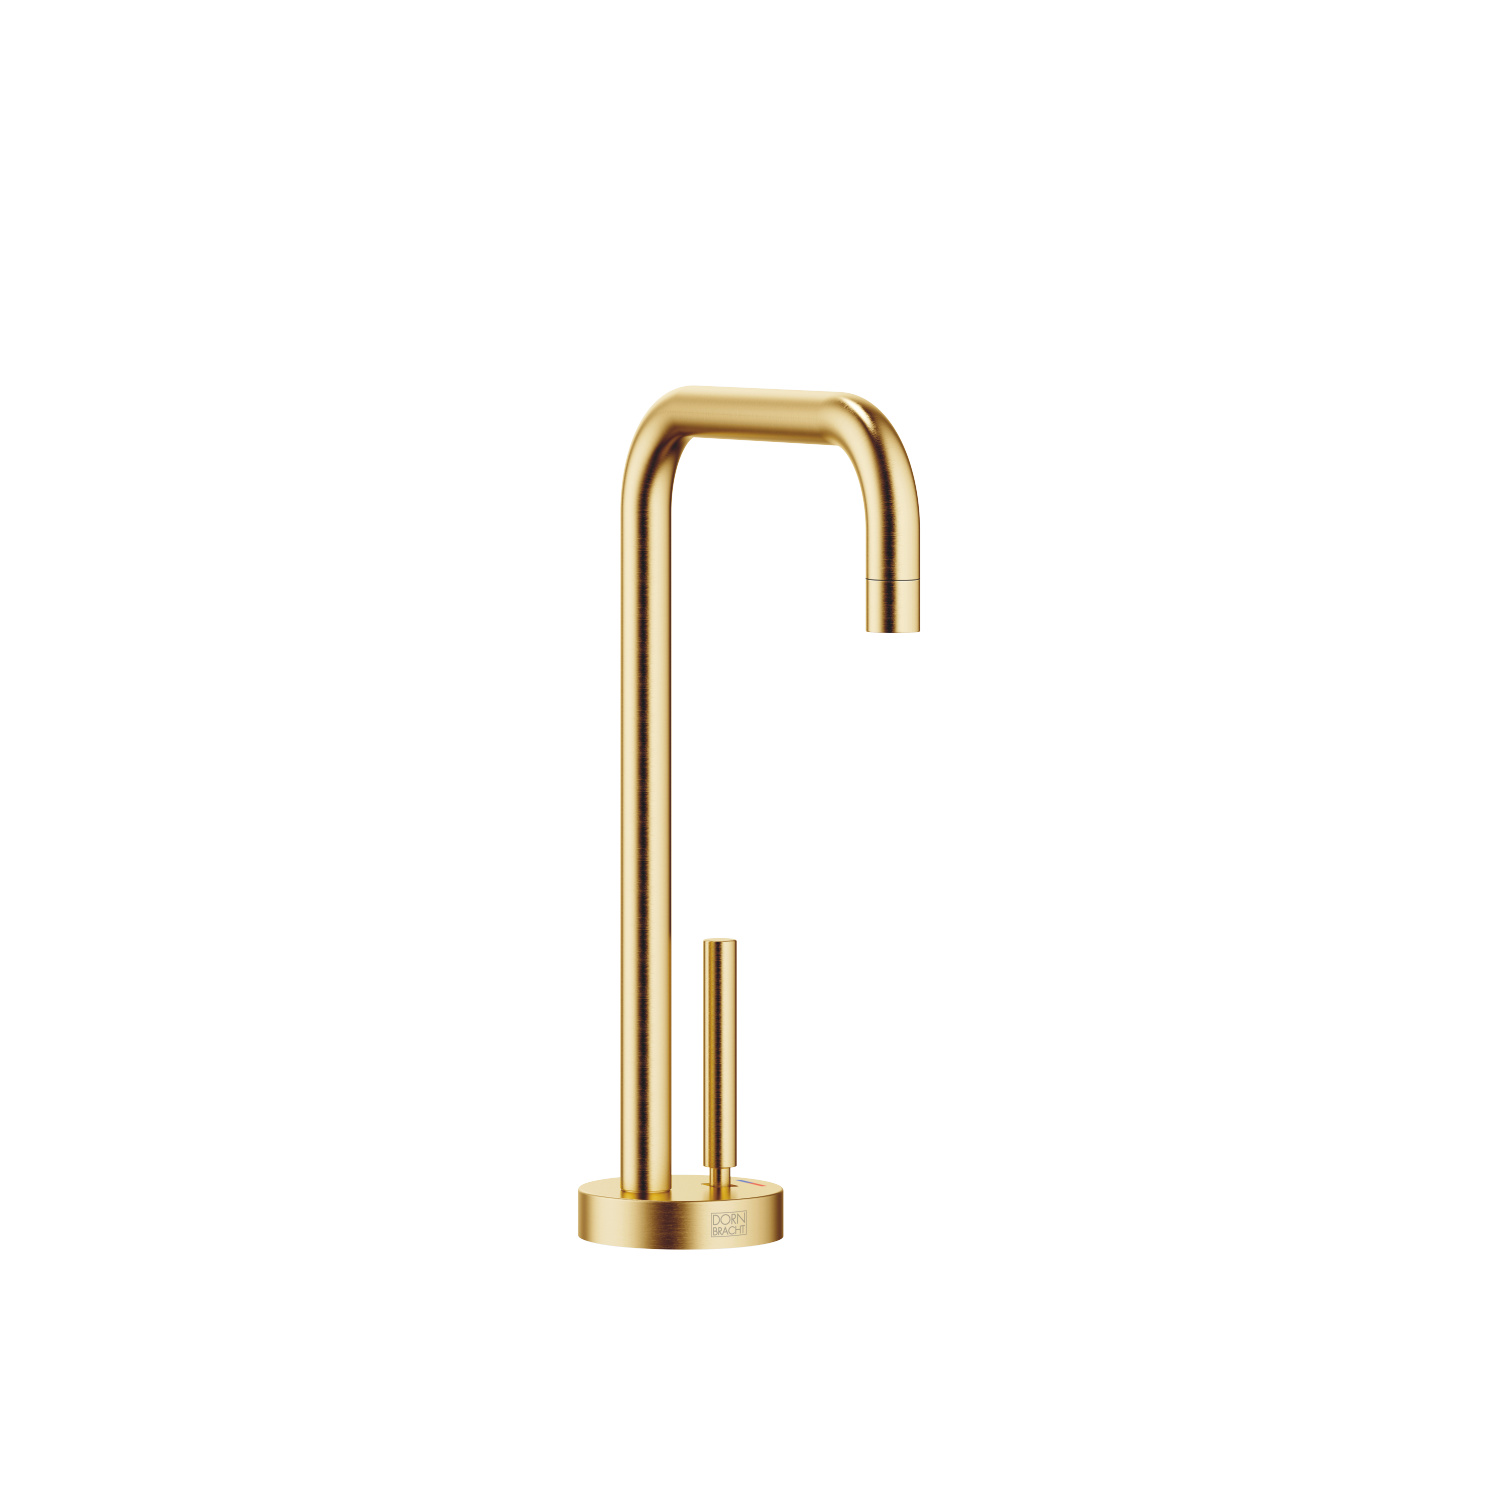 HOT & COLD WATER DISPENSER - Brushed Durabrass